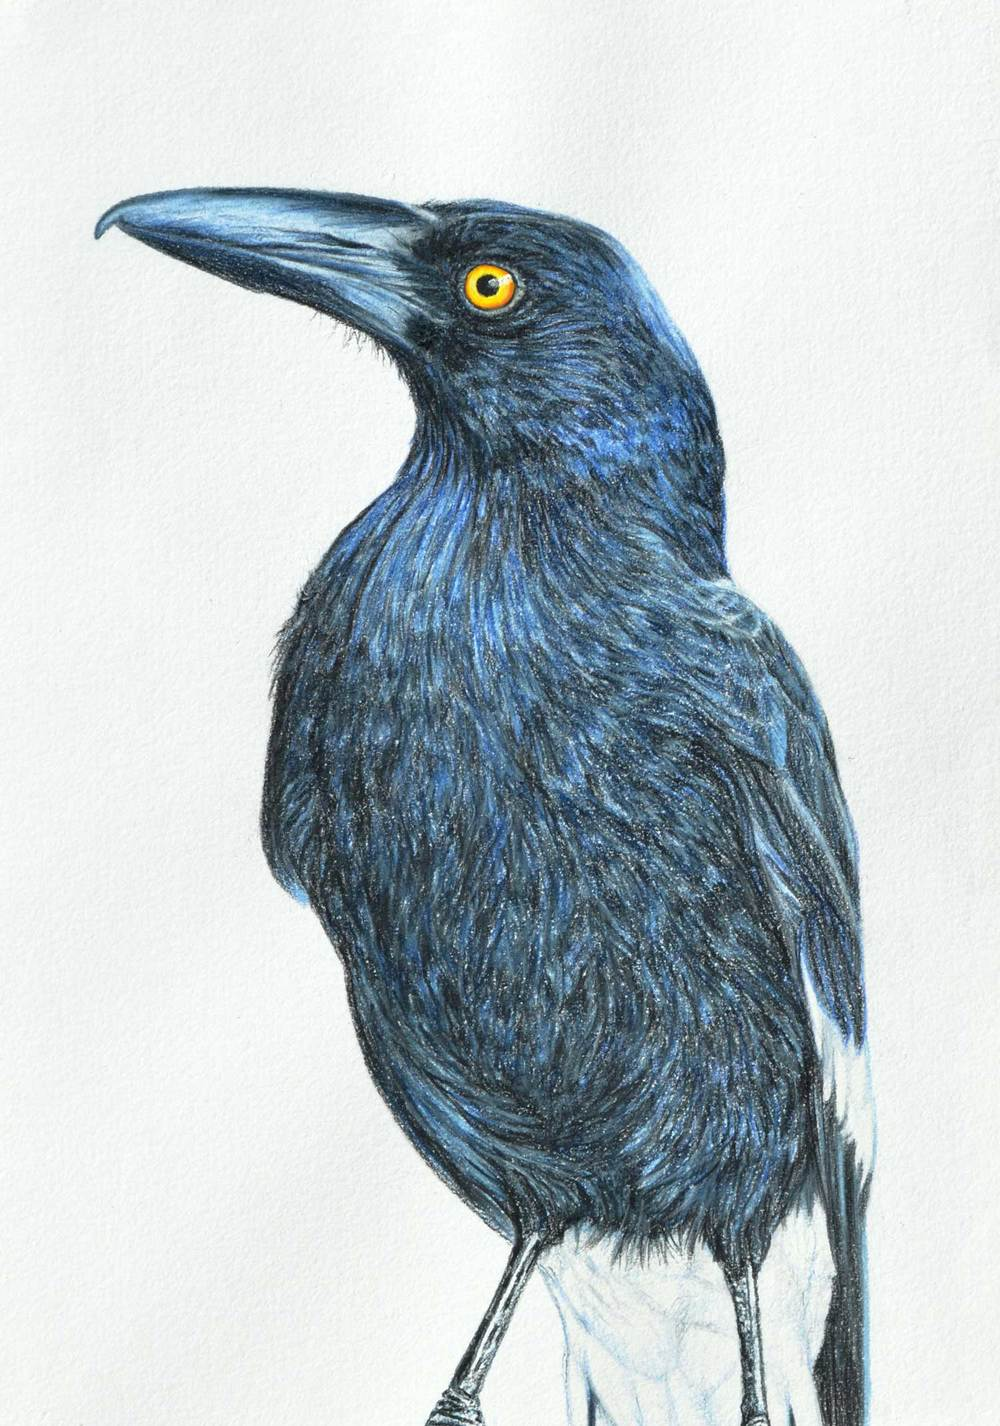 Currawong 41 x 31 CM   PASTEL ON HANDMADE PAPER $1,500 framed Available as a Limited edition of 50, pigment print on watercolour paper $500